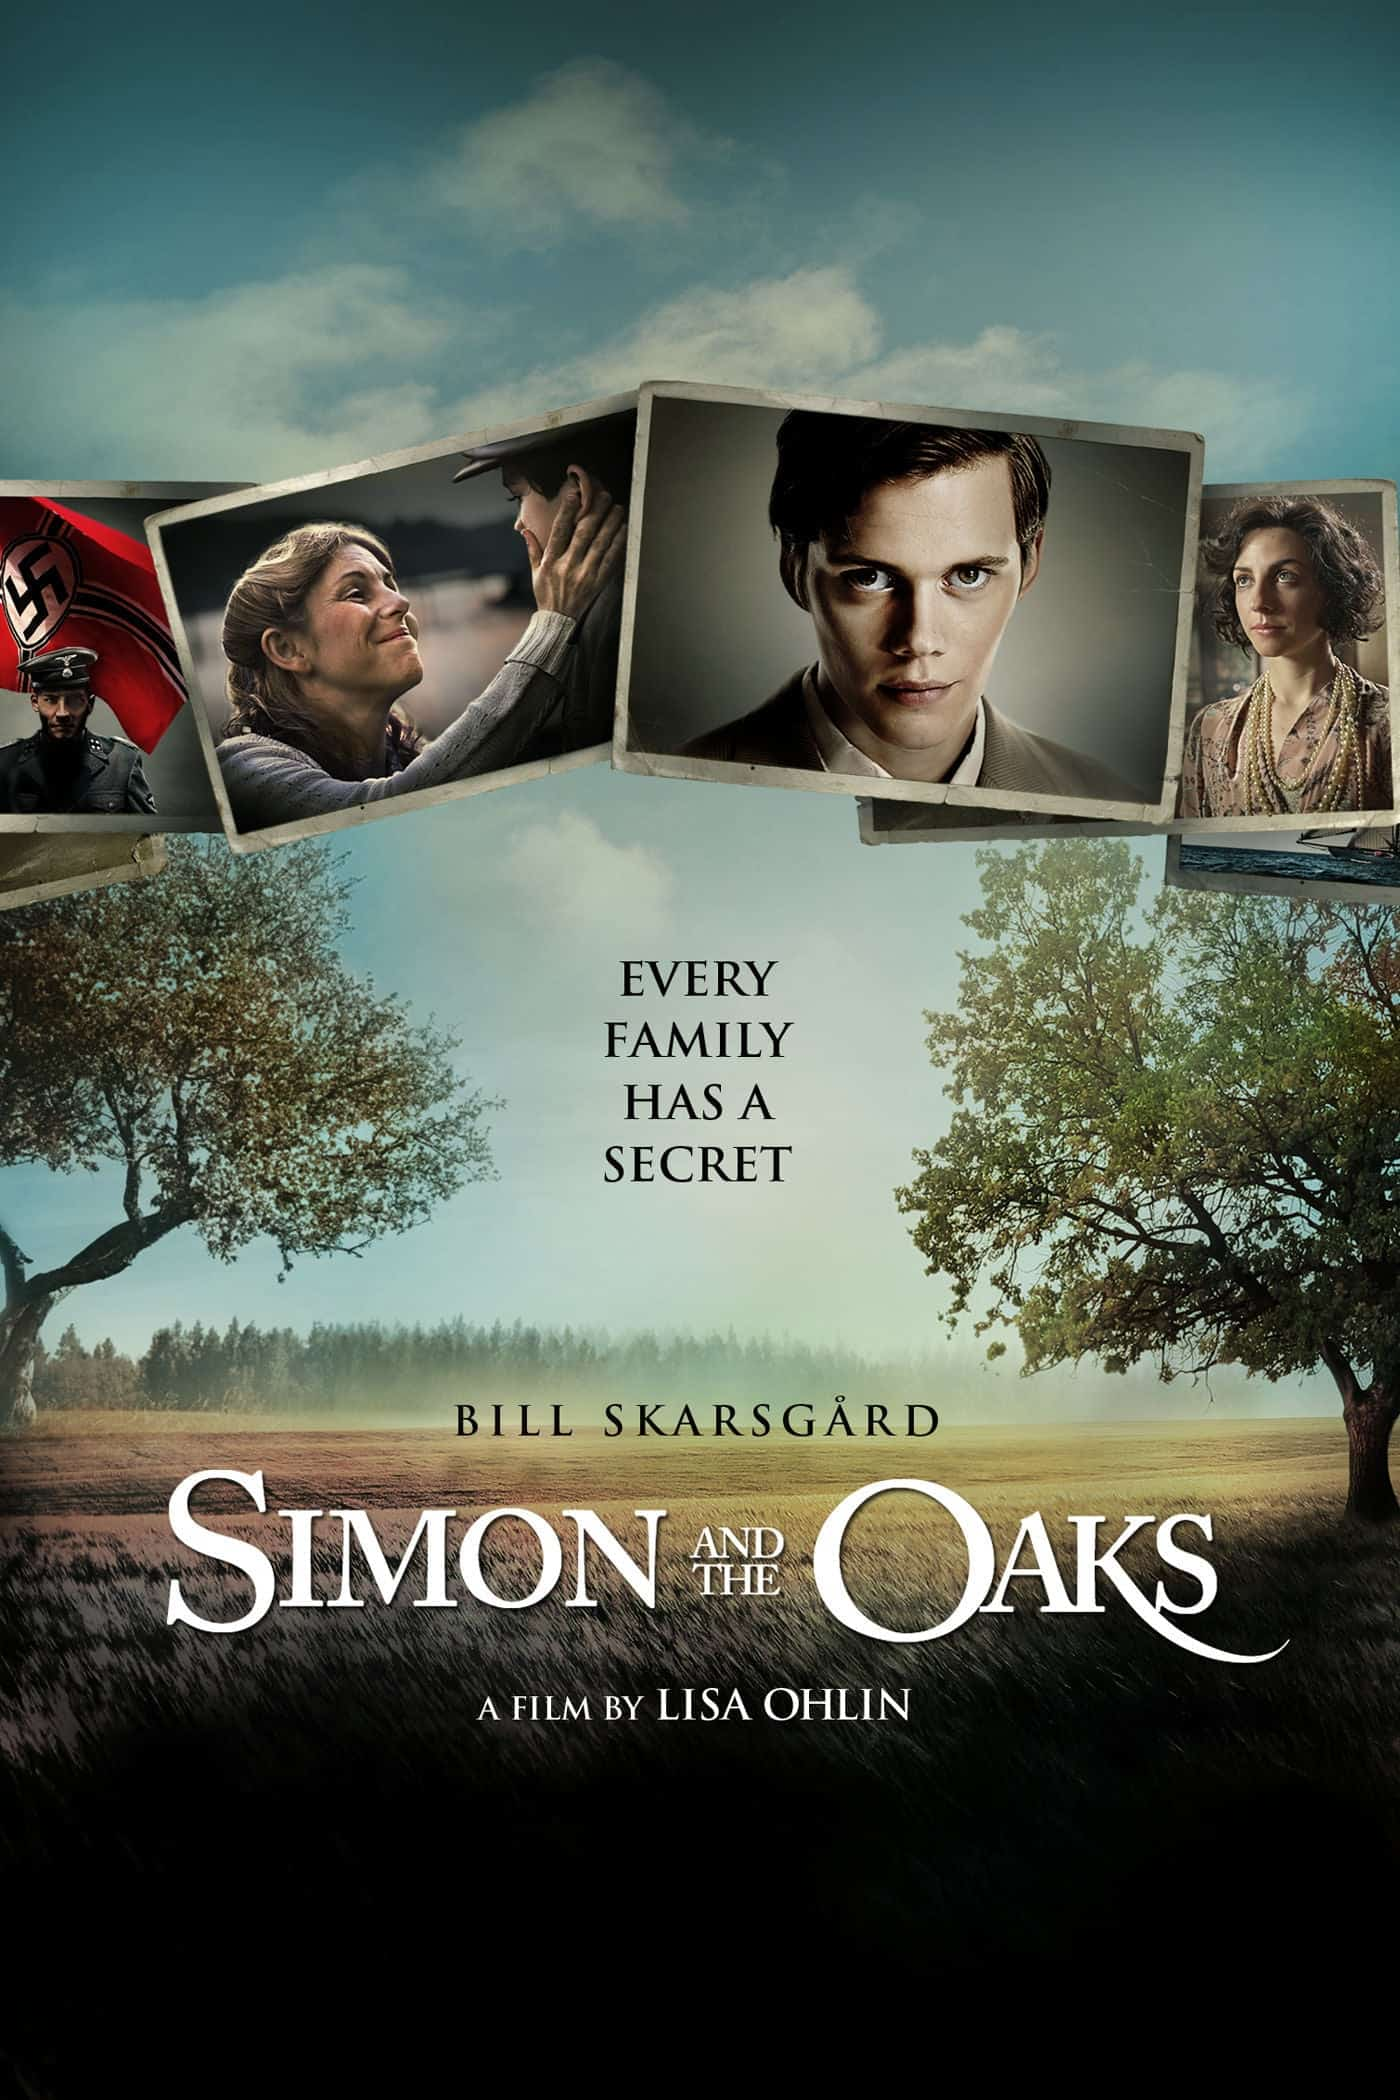 Simon and the Oaks, 2011